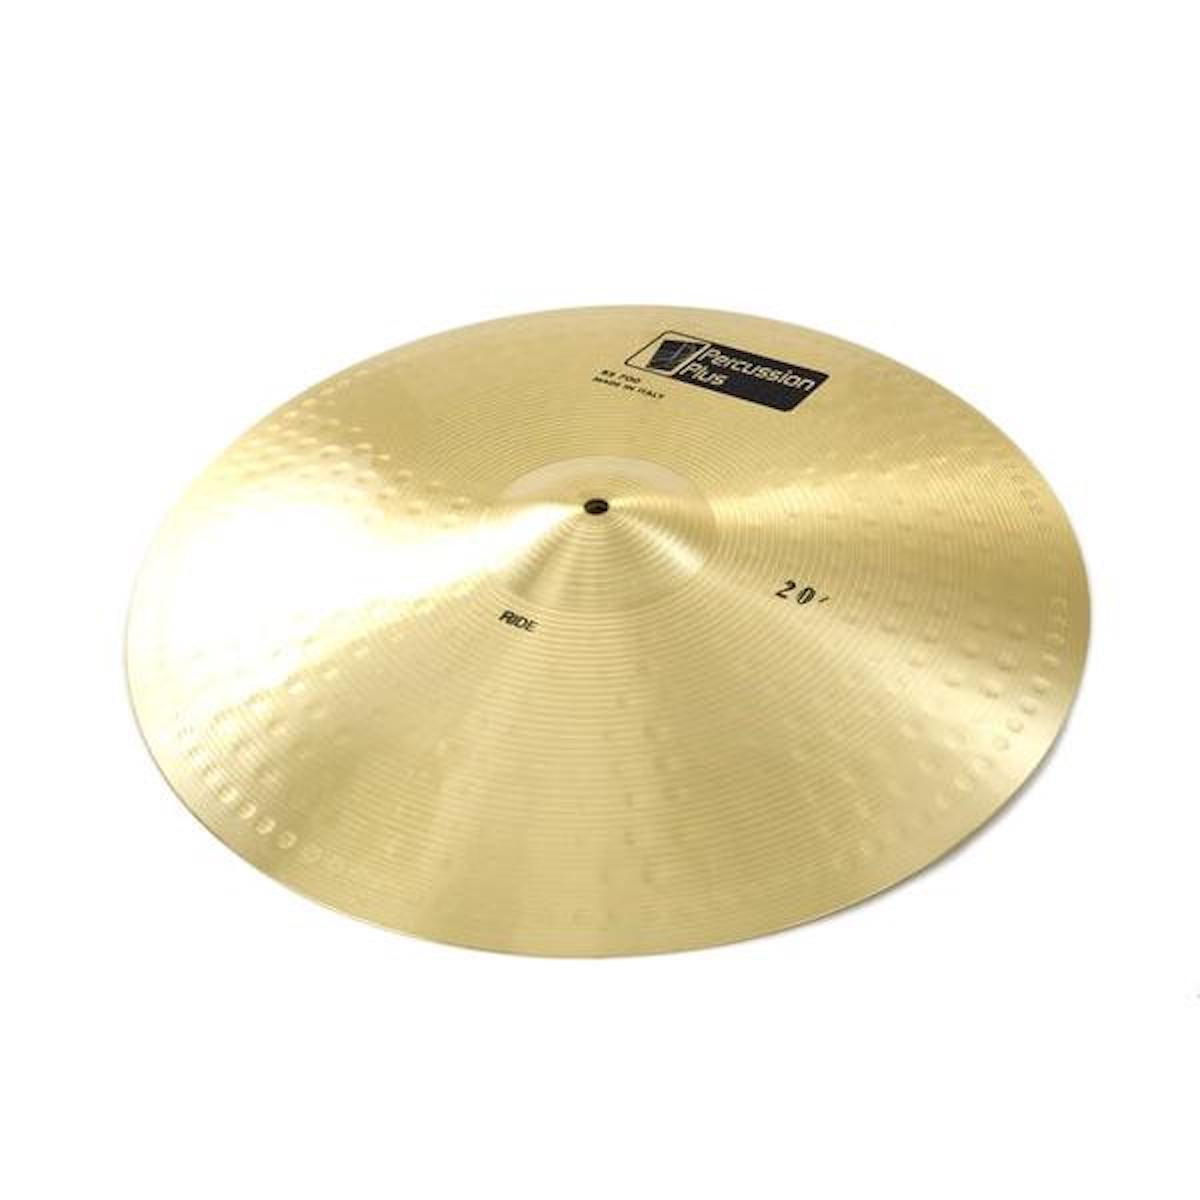 "Percussion Plus 20"" Ride Cymbal"